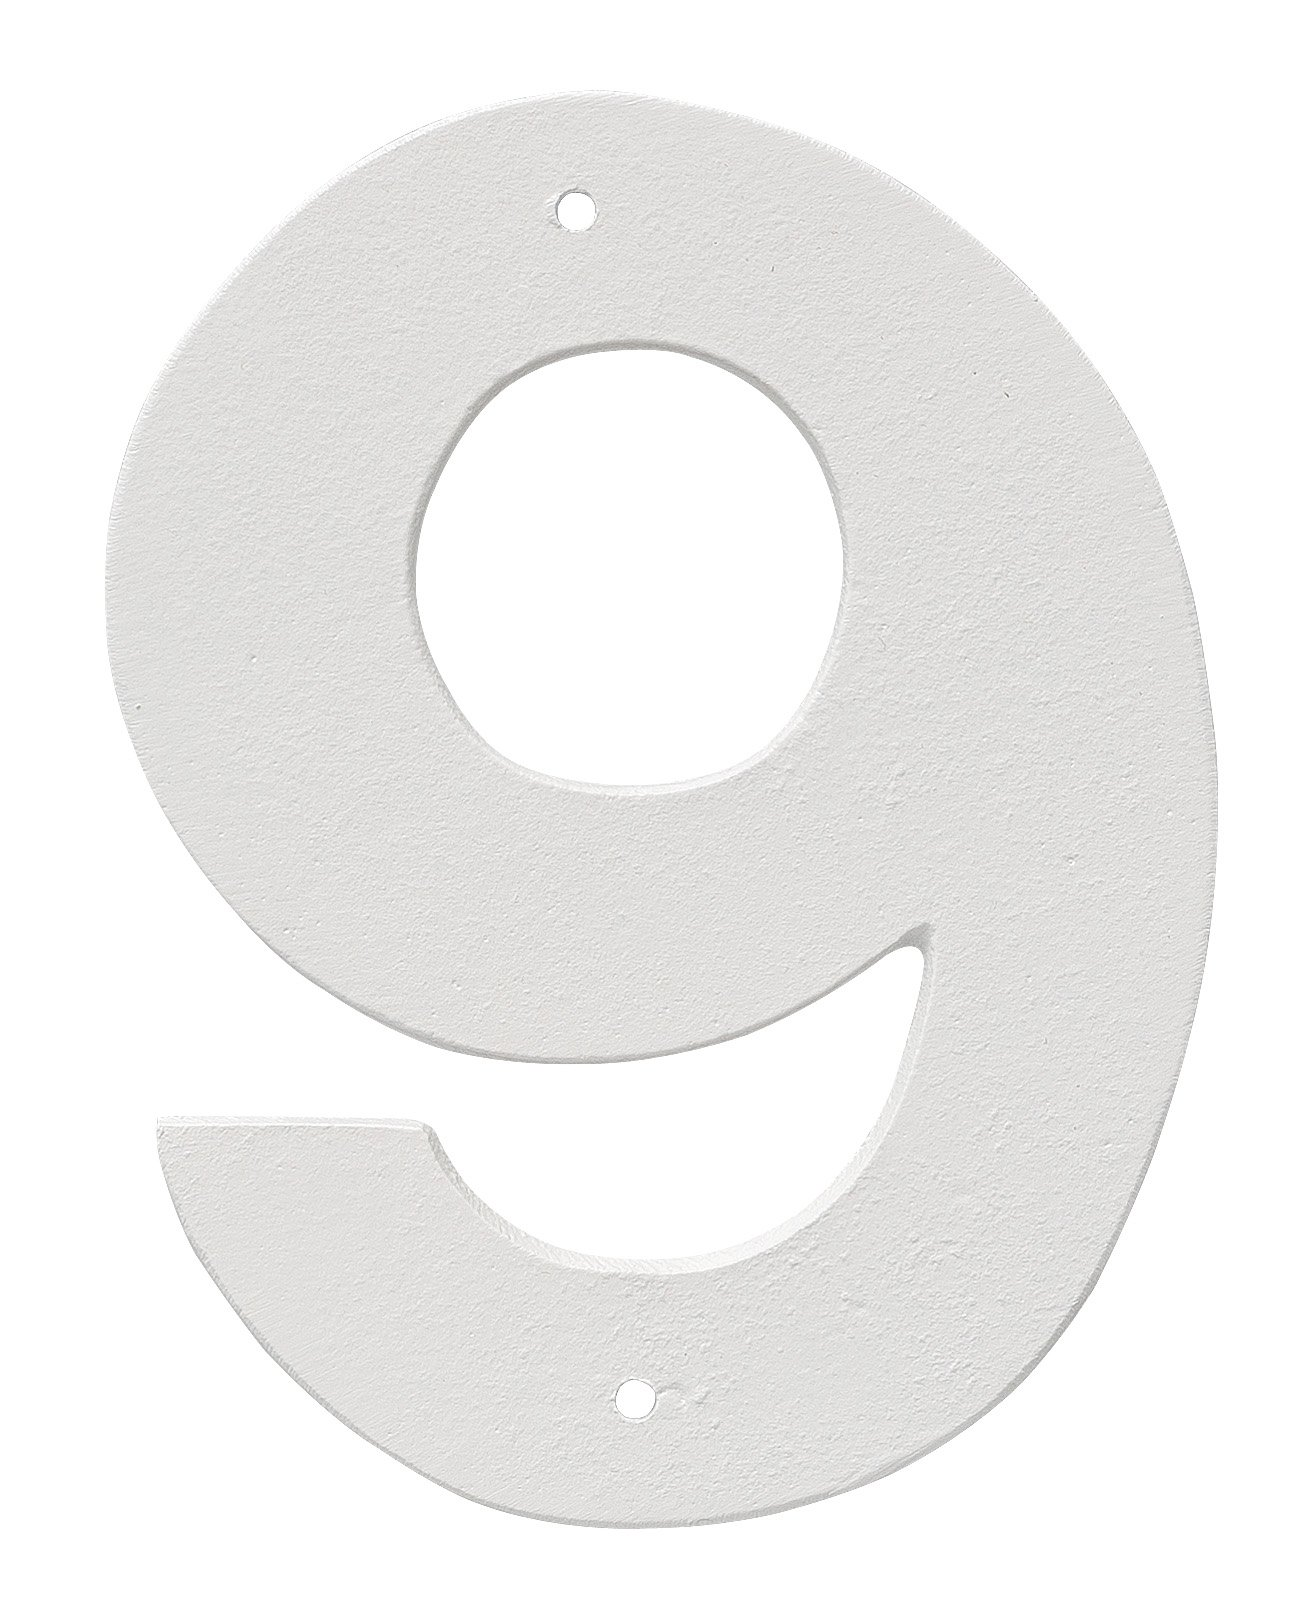 Montague Metal Products 8'' Aluminum House Number 9 Outdoor Plaque, Medium, White